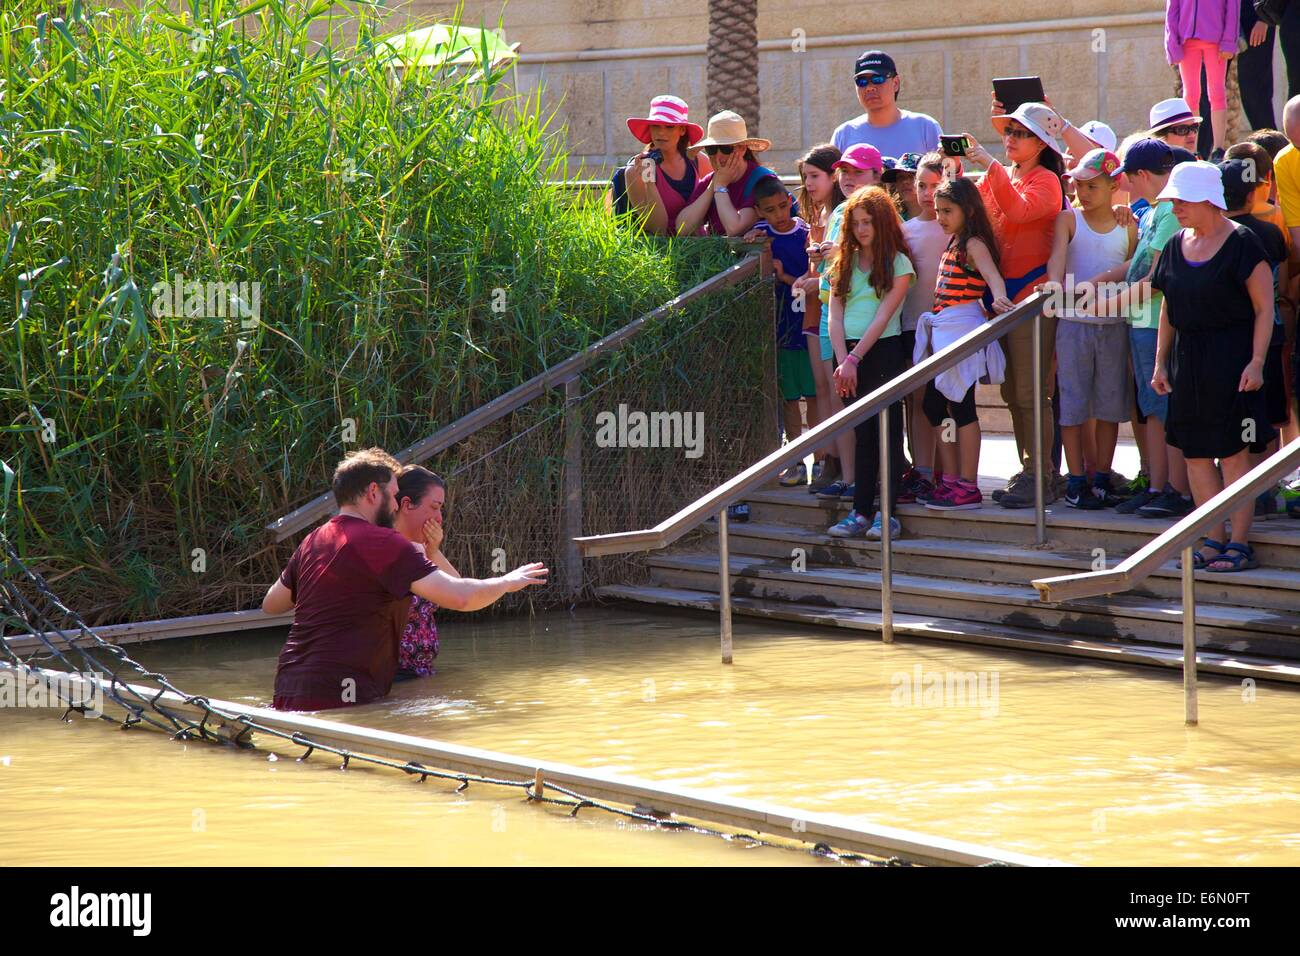 Baptism Site of Jesus Christ At River Jordan, Qasr al Yahud, Israel, Middle East - Stock Image